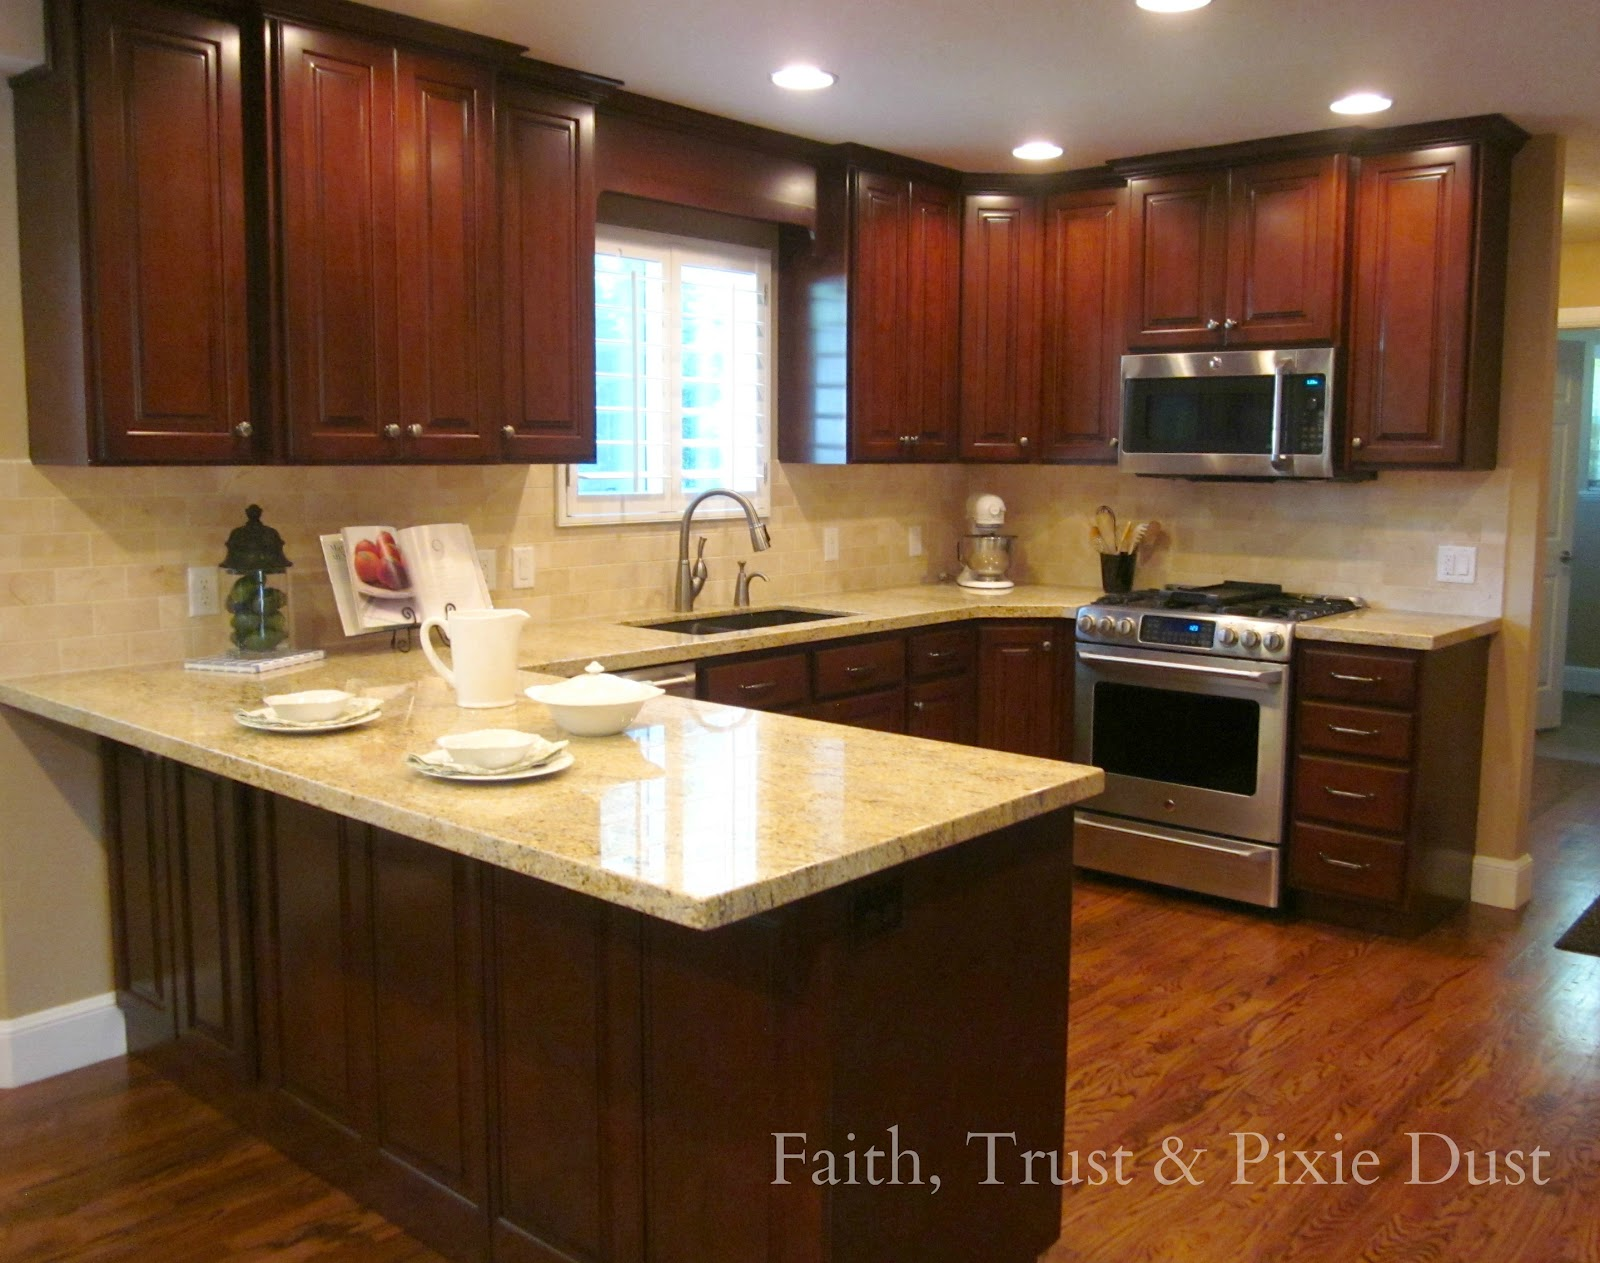 Honey i 39 m home a spectacular kitchen remodel for Remodel my kitchen